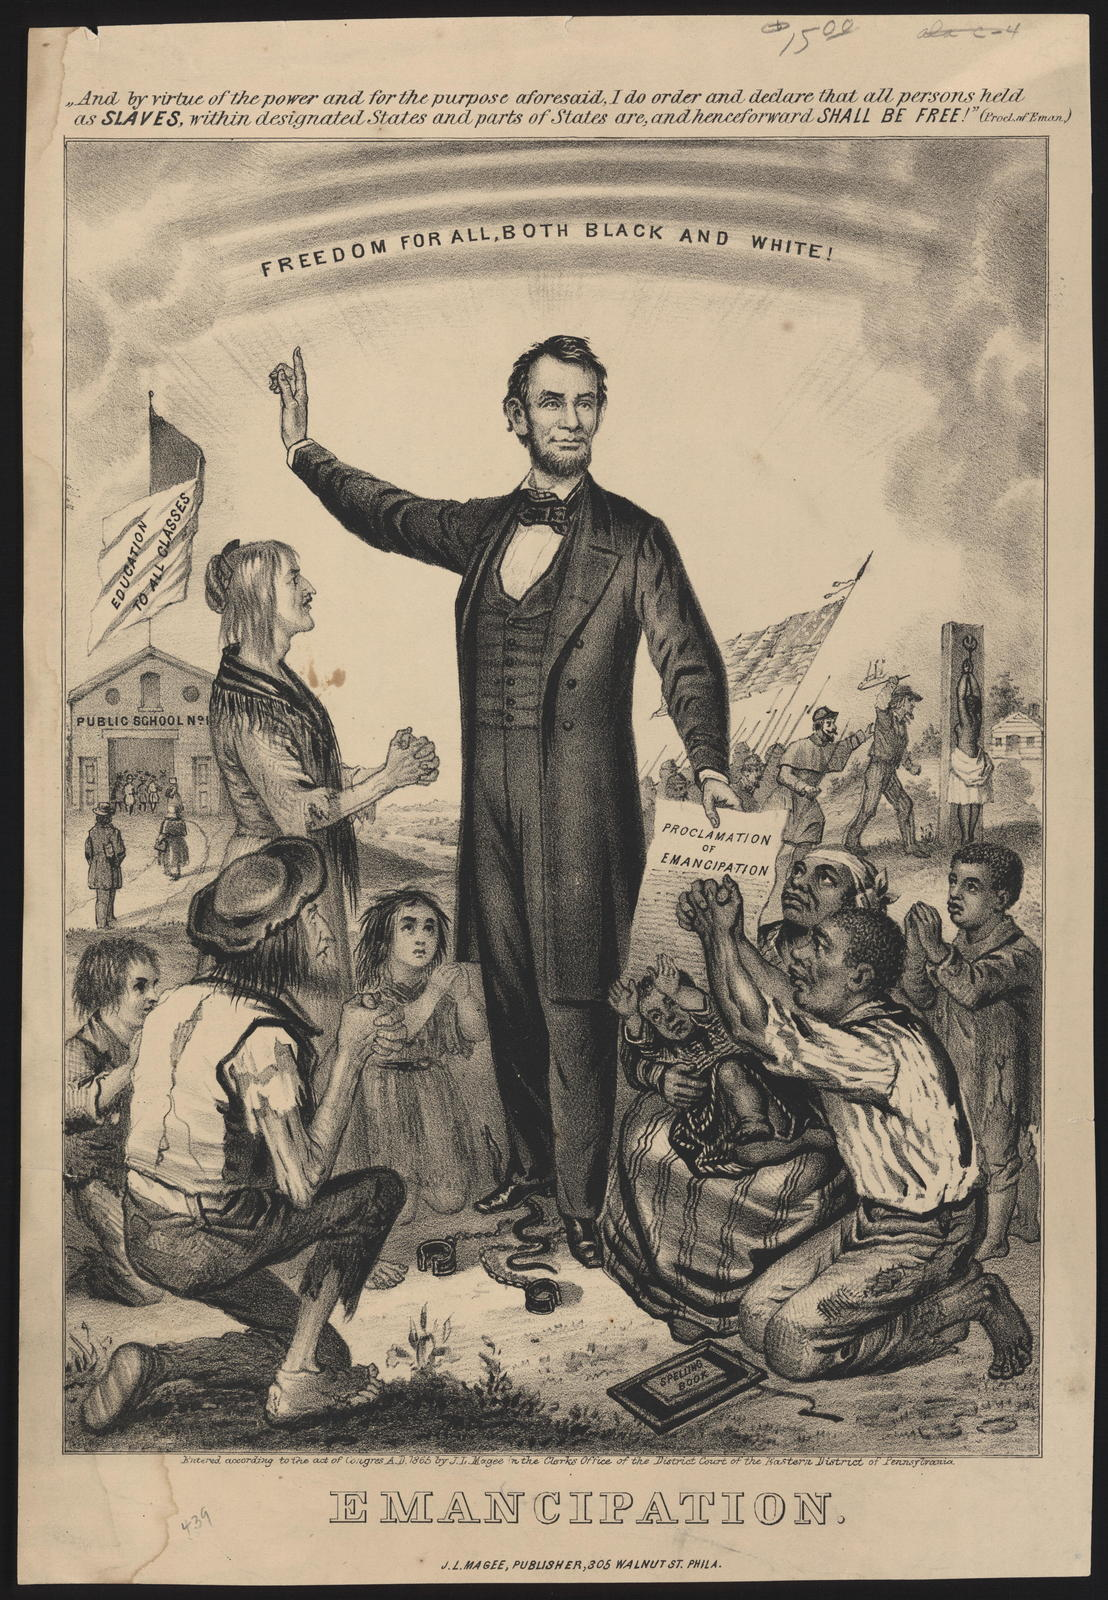 Emancipation. And by virtue of the power and for the purpose aforesaid, I do order and declare that all persons held as slaves, within designated states and parts of States are, and henceforeward [sic] shall be free! [J. L. Magee copy of the Emancipation Proclamation.]